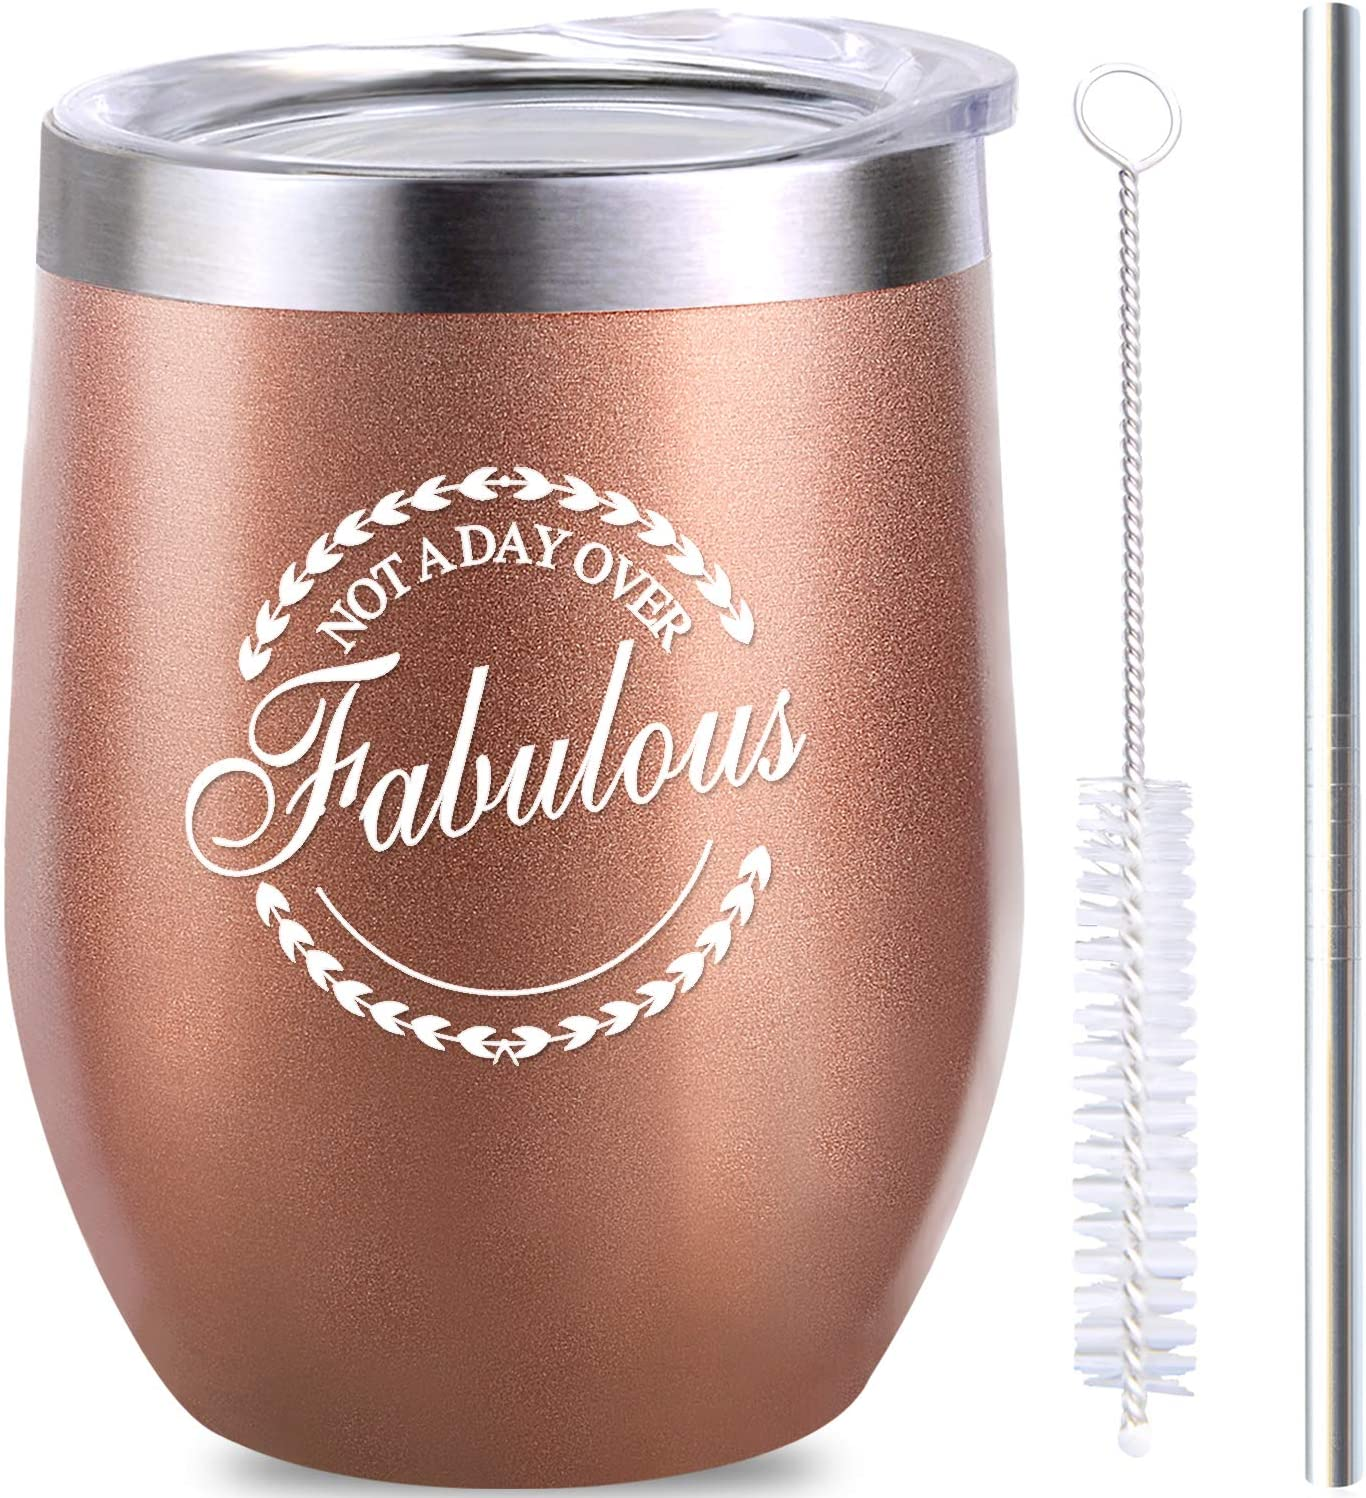 Not a Day Over Fabulous - Birthday Gifts for Women Funny Birthday Christmas Wine Gift Idea for Women Best Friend Her Wife Daughter - 12oz Insulated Wine Tumbler Coffee Cup with Lid Straw Clean Brush